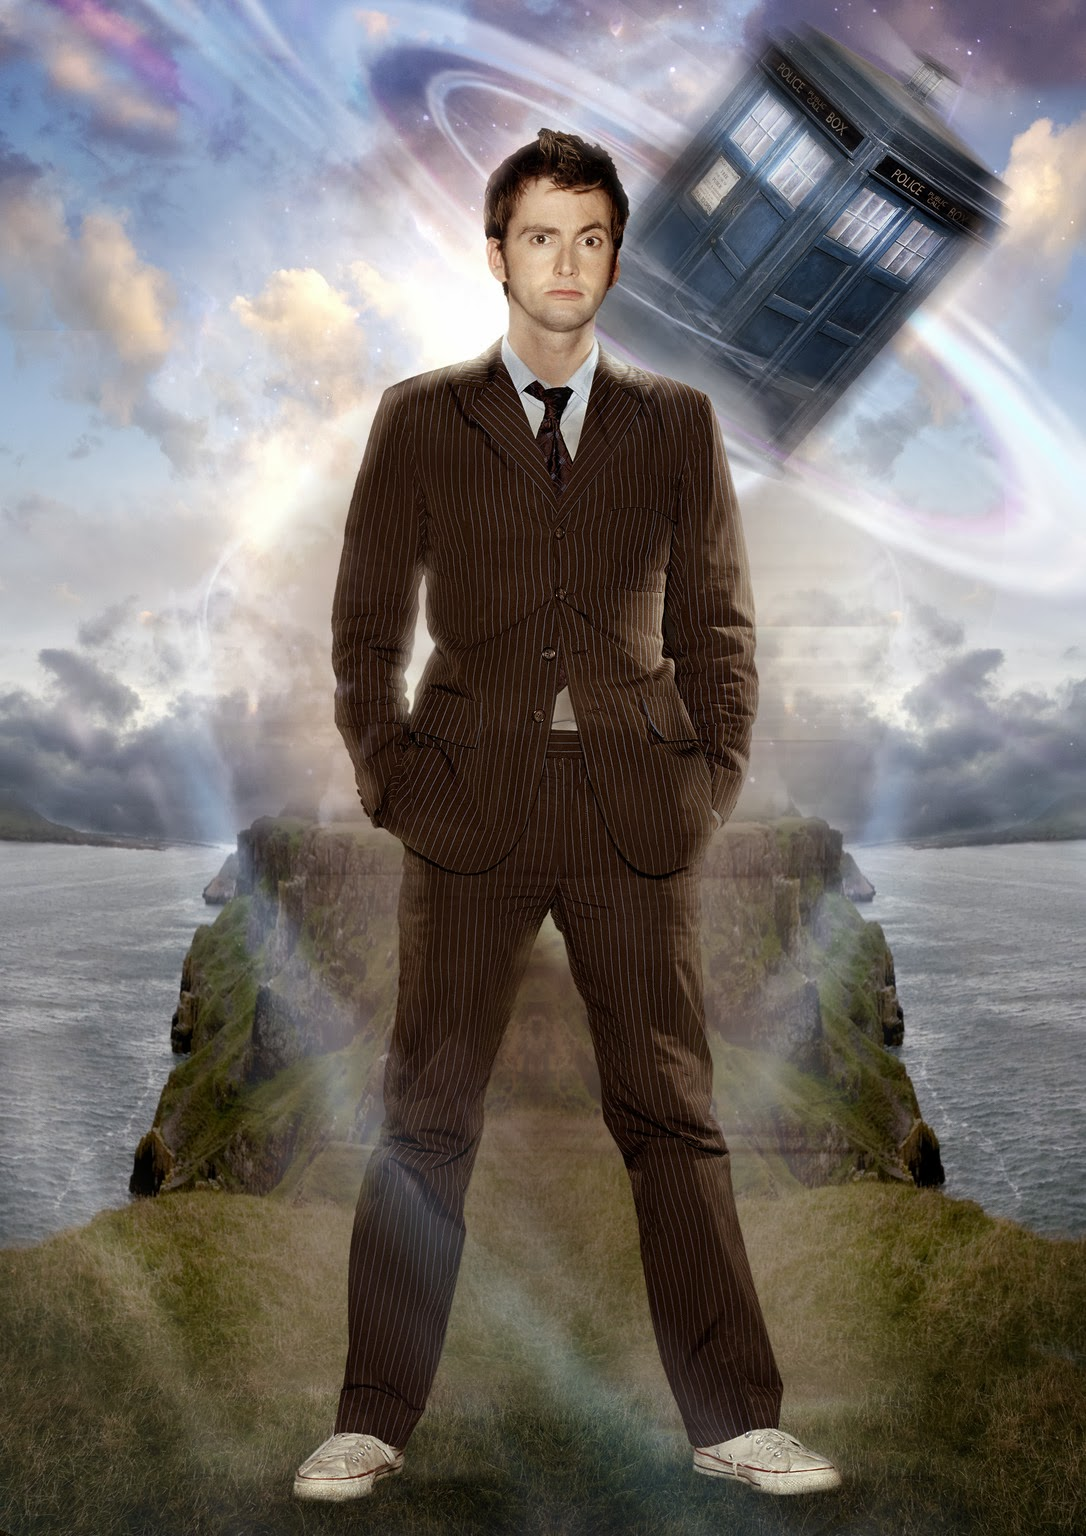 Your Ultimate David Tennant Doctor Who Episode Revealed